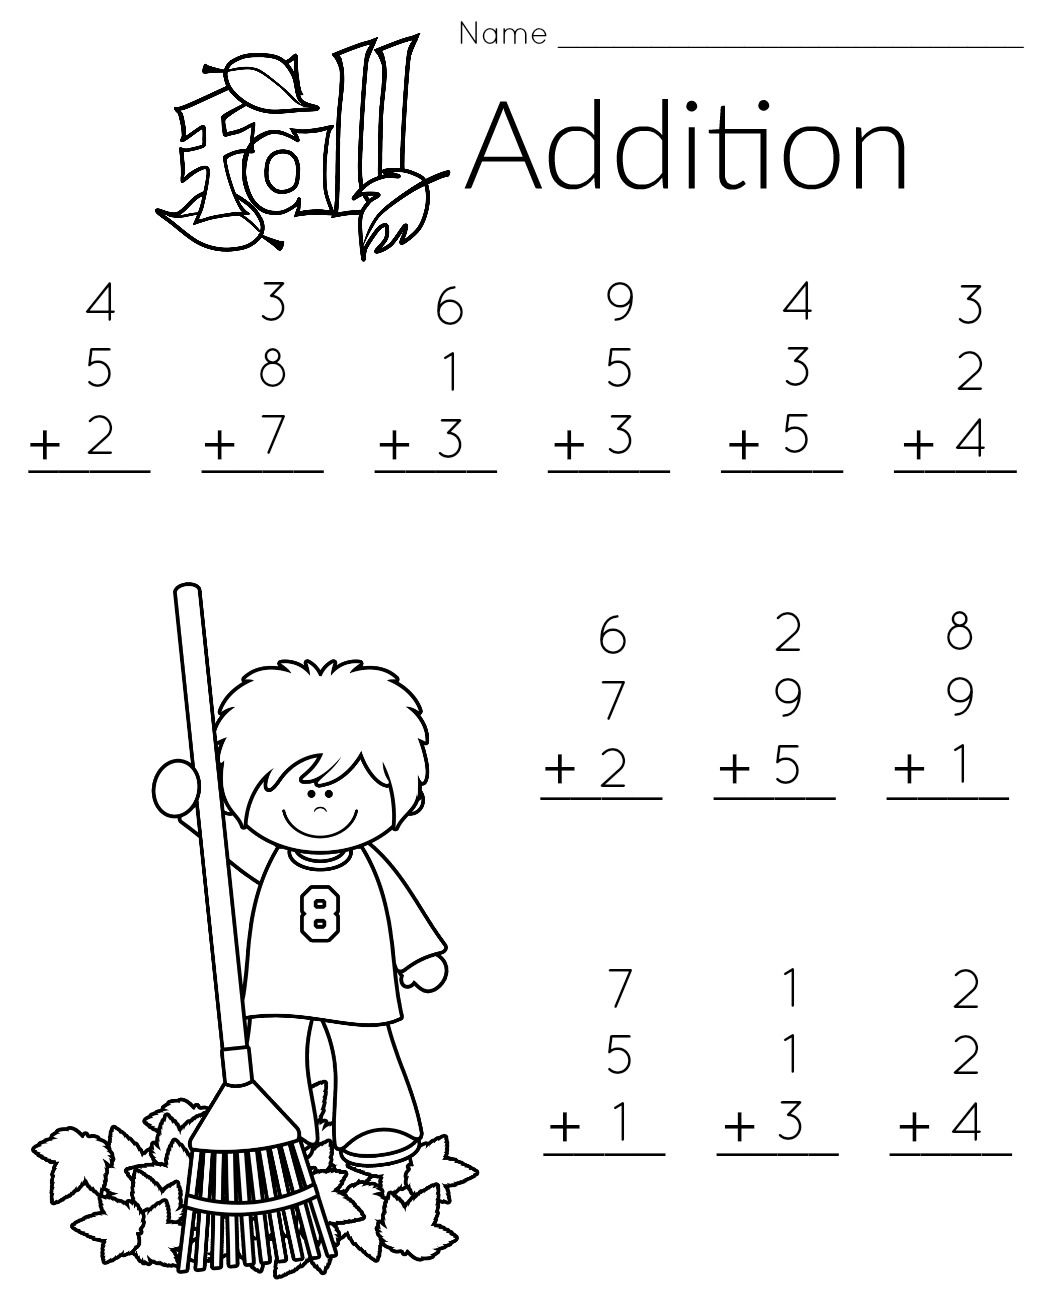 Remarkable image inside printable 1st grade math